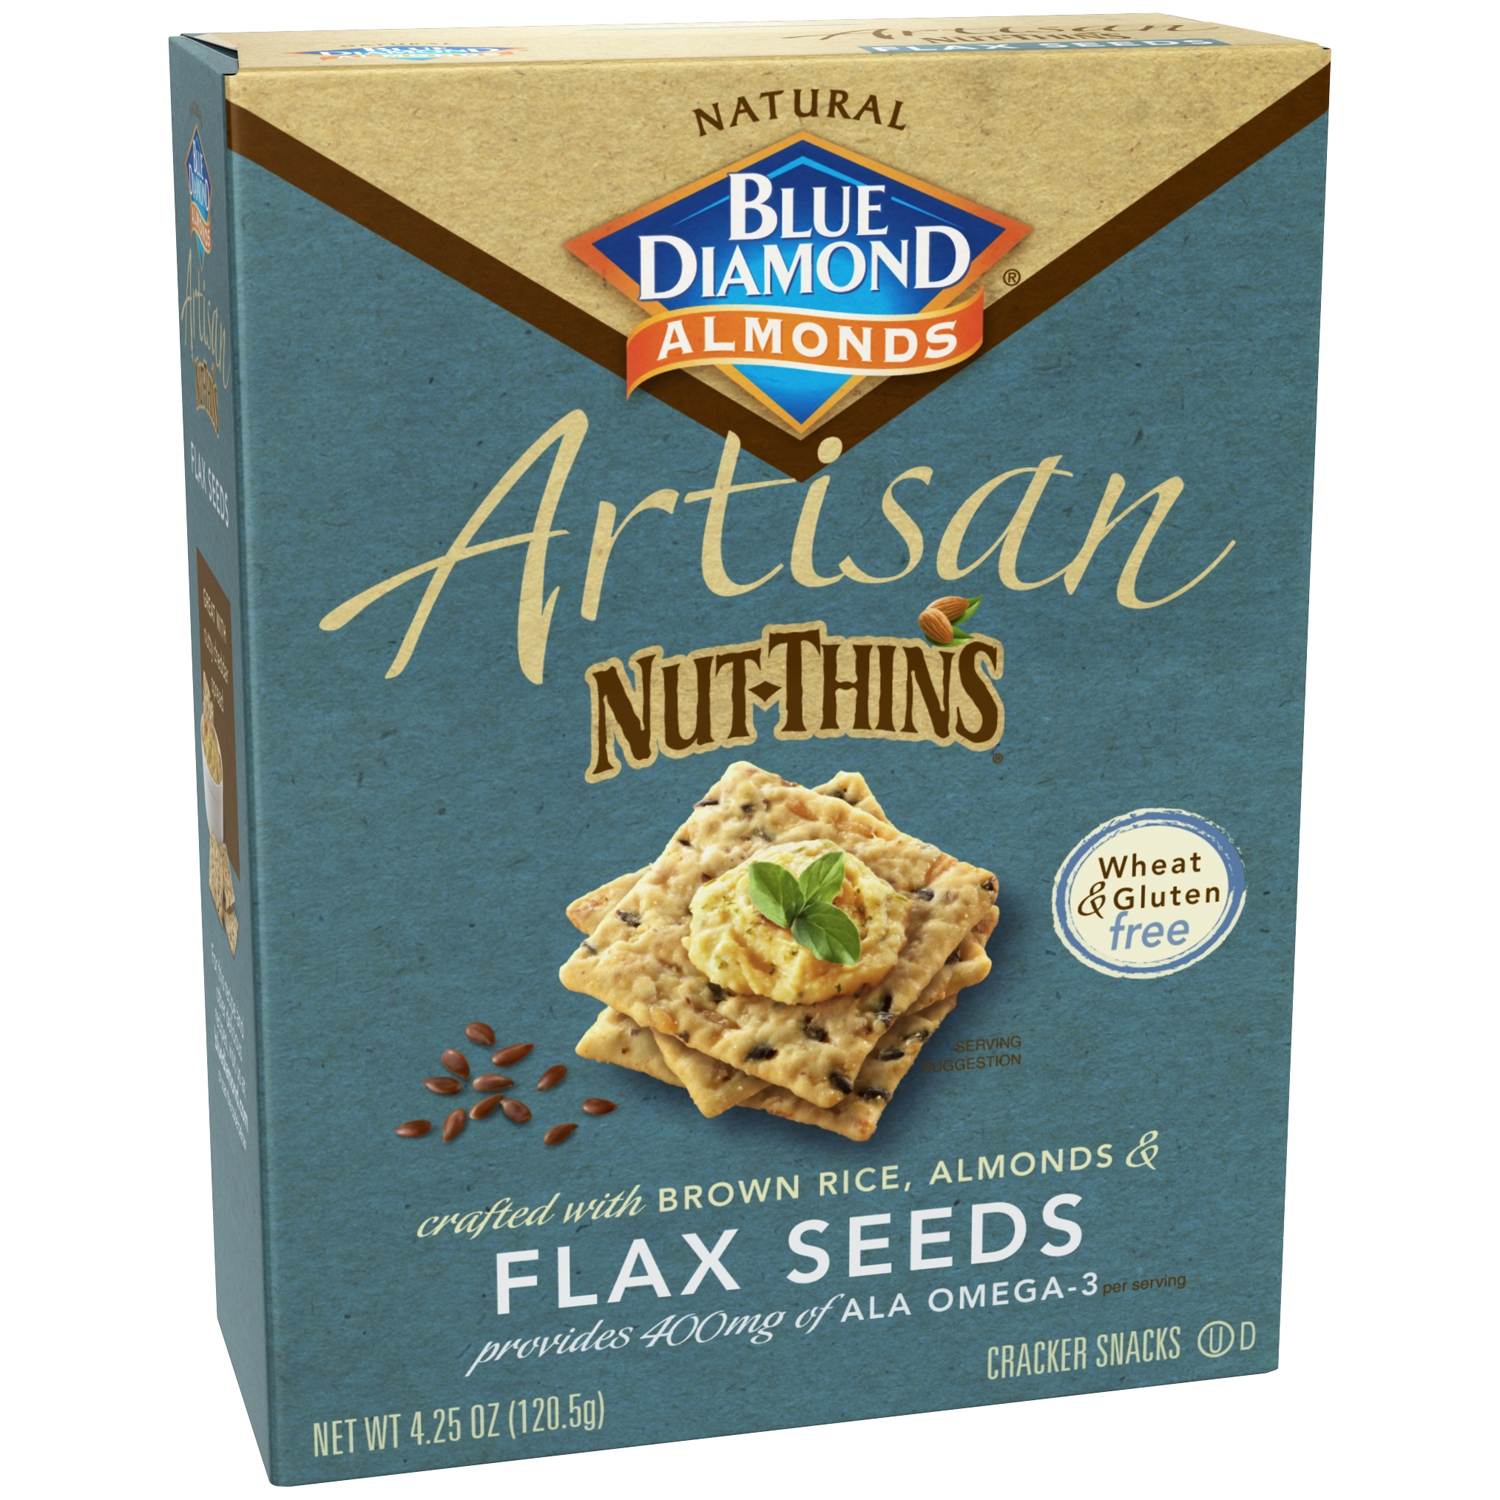 (2 Pack) Artisan Nut Thins Crackers, Flax Seeds 4.25 oz Box